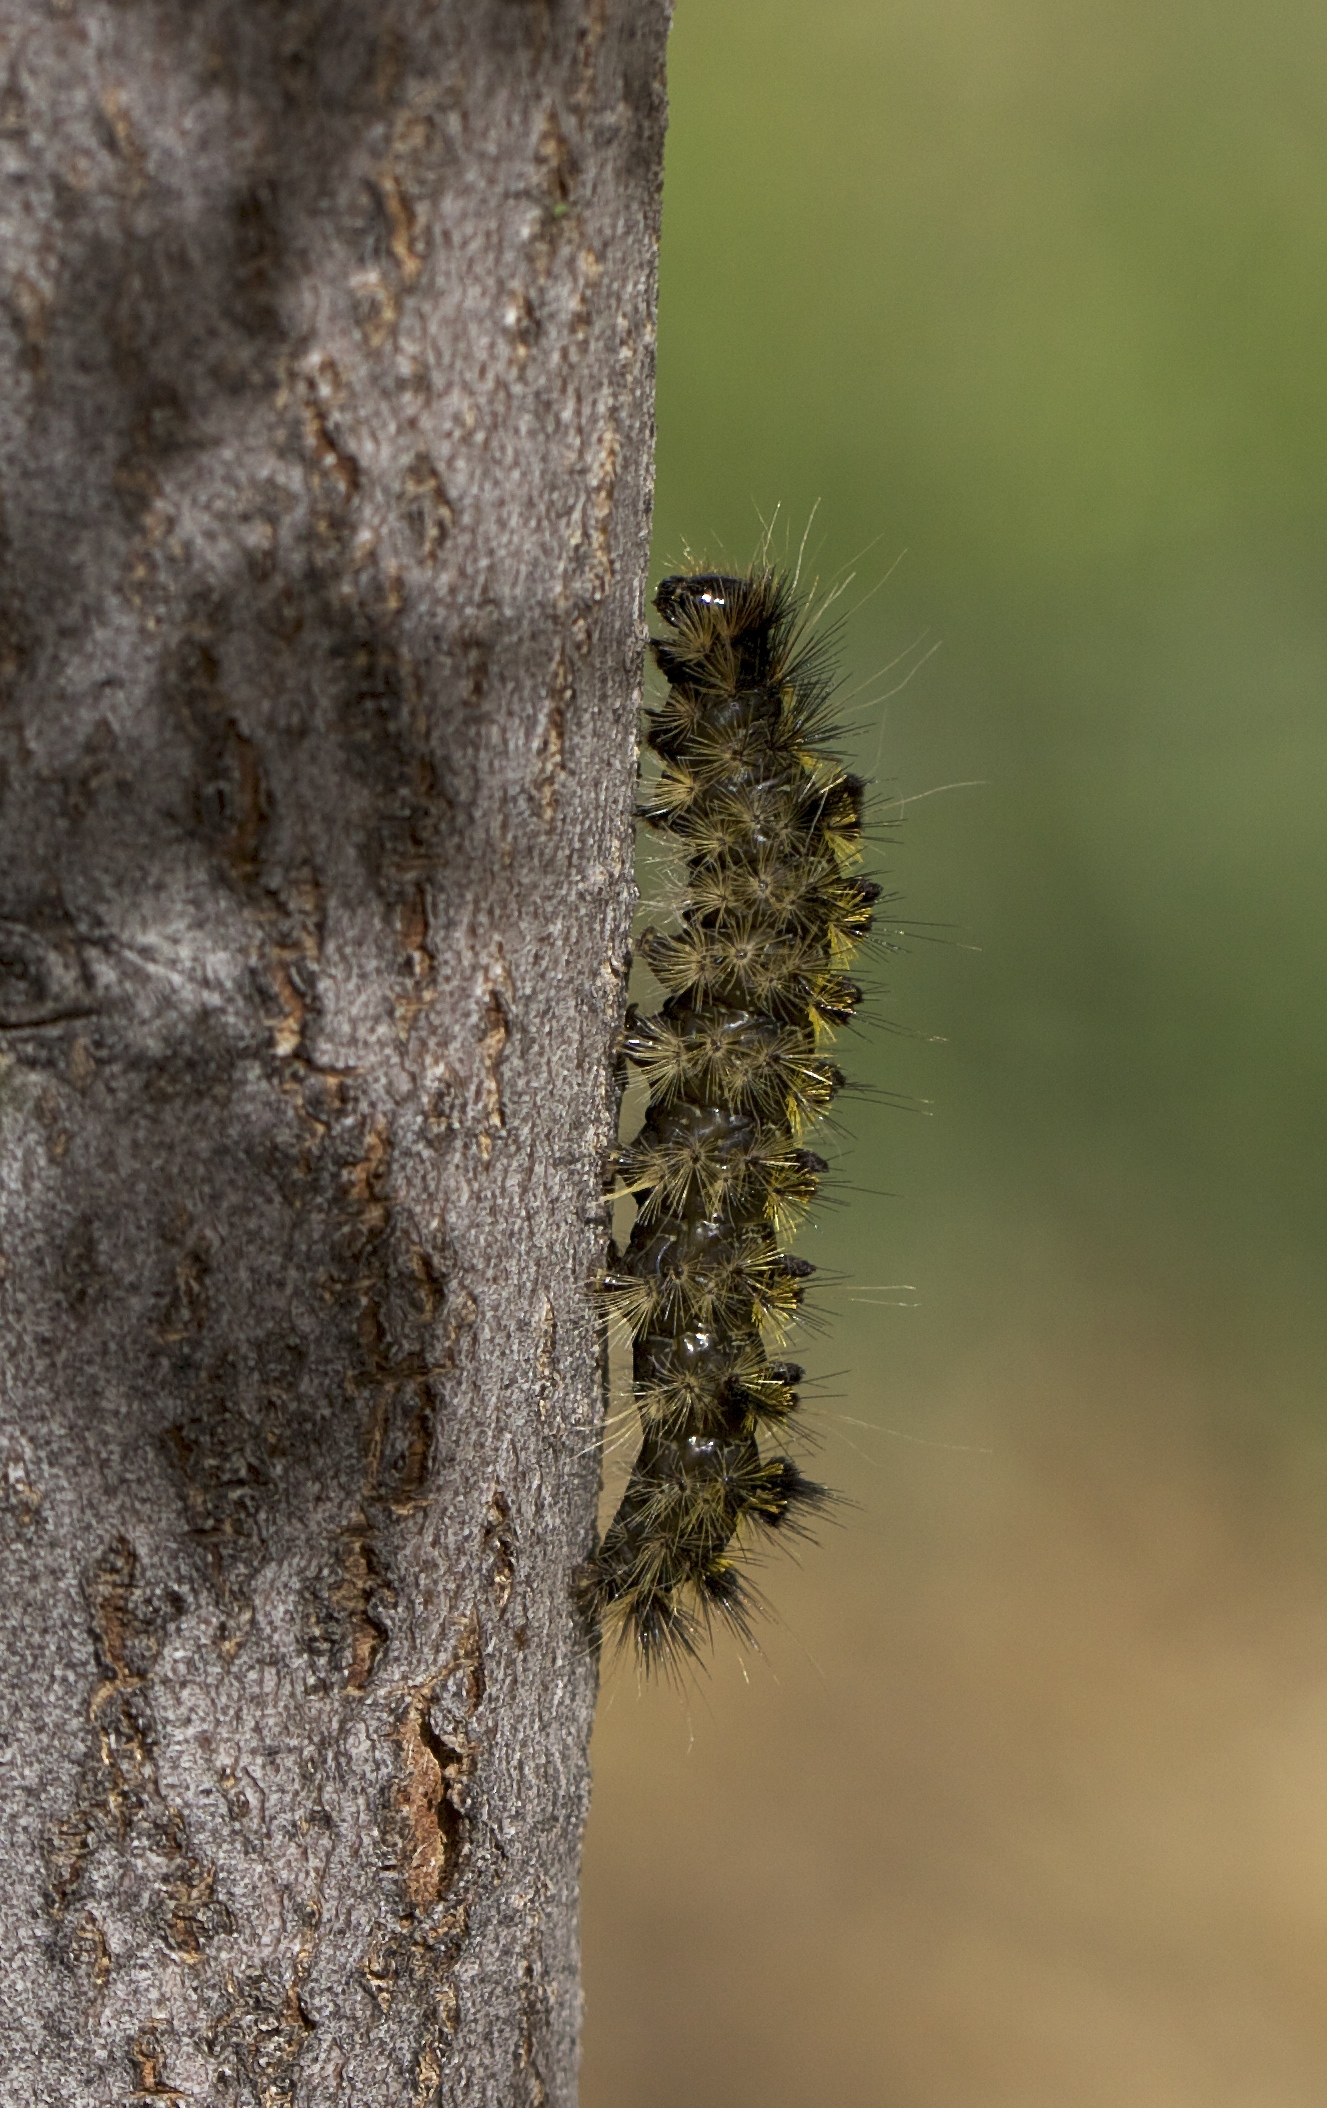 May 17, these caterpillars are crawling the walls all over Crawford. Covering the walkways, on every living thing, looking for a place to pupate. We hope they are innocuous salt-marsh caterpillars and will turn into benign white moths. We'll know more later!